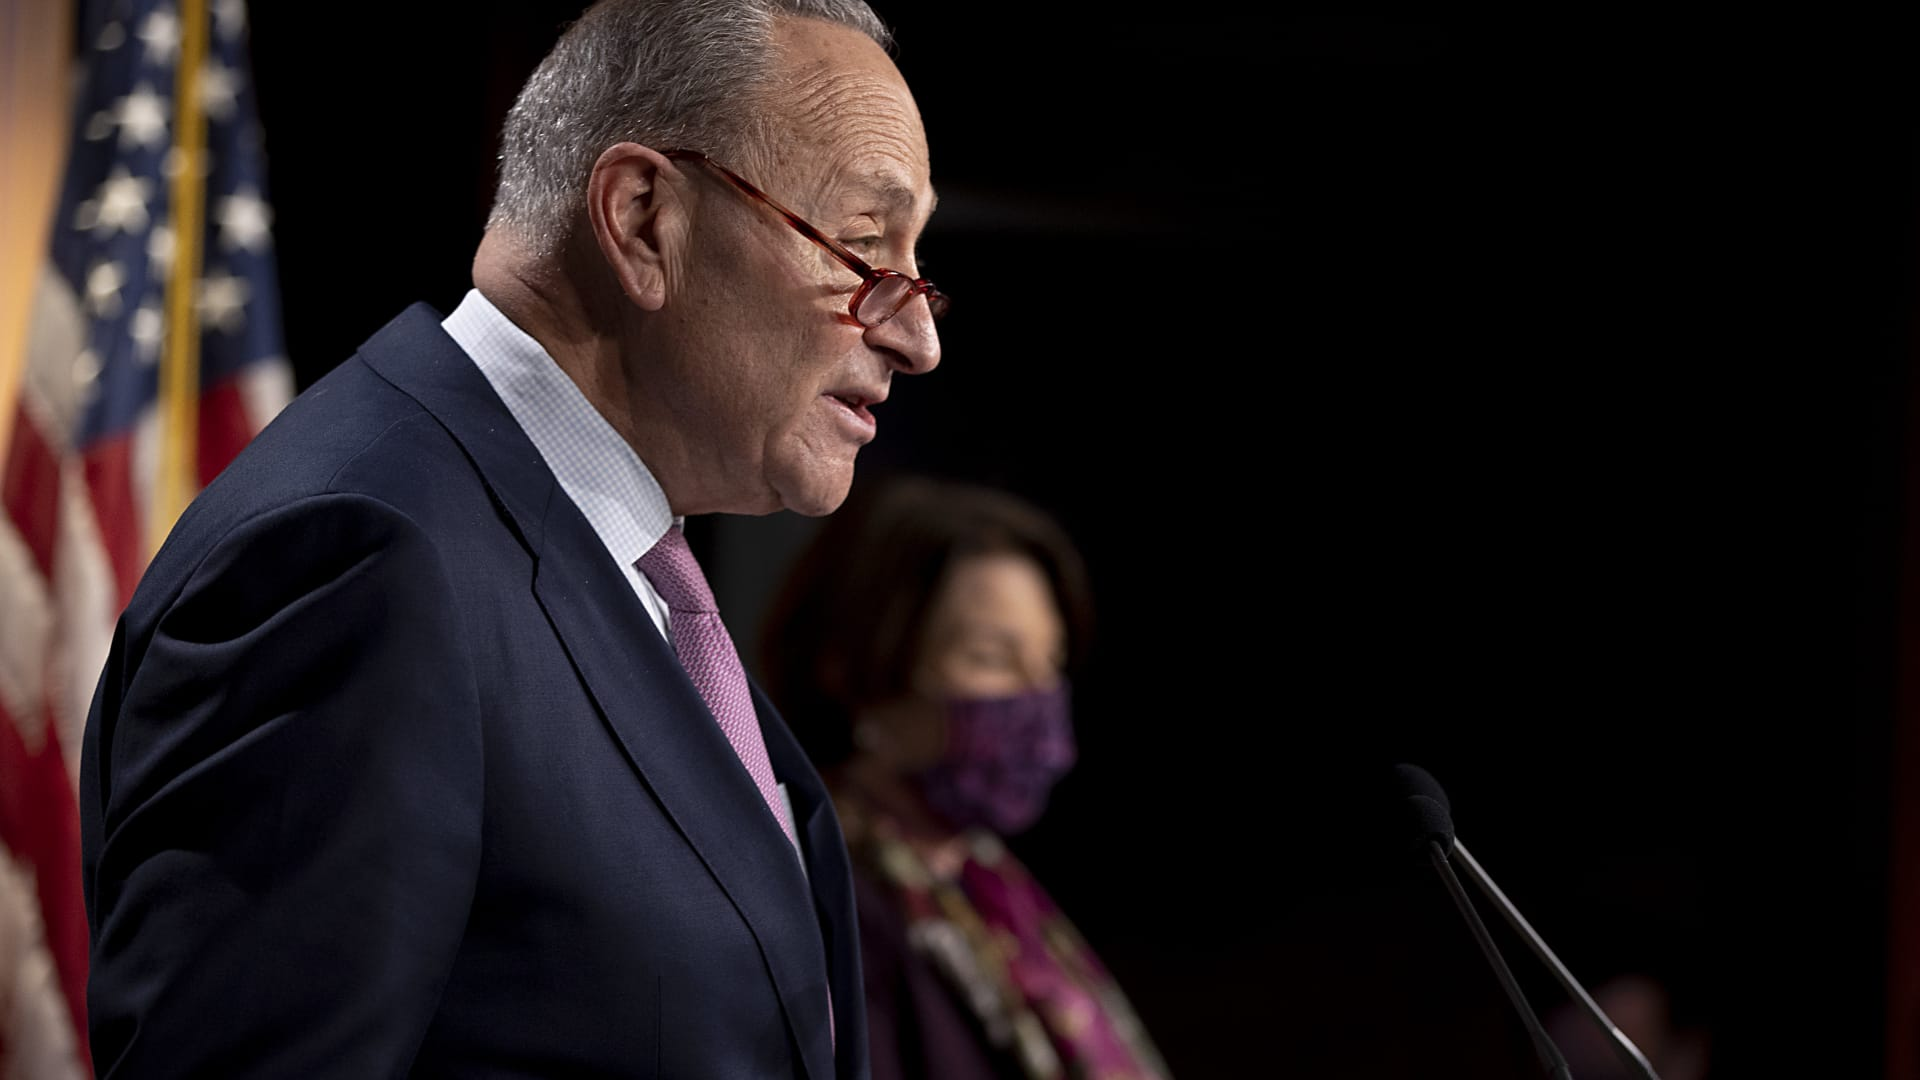 Senate Minority Leader Chuck Schumer, D-NY, holds a news conference at the U.S. Capitol on Dec. 1, 2020 in Washington.